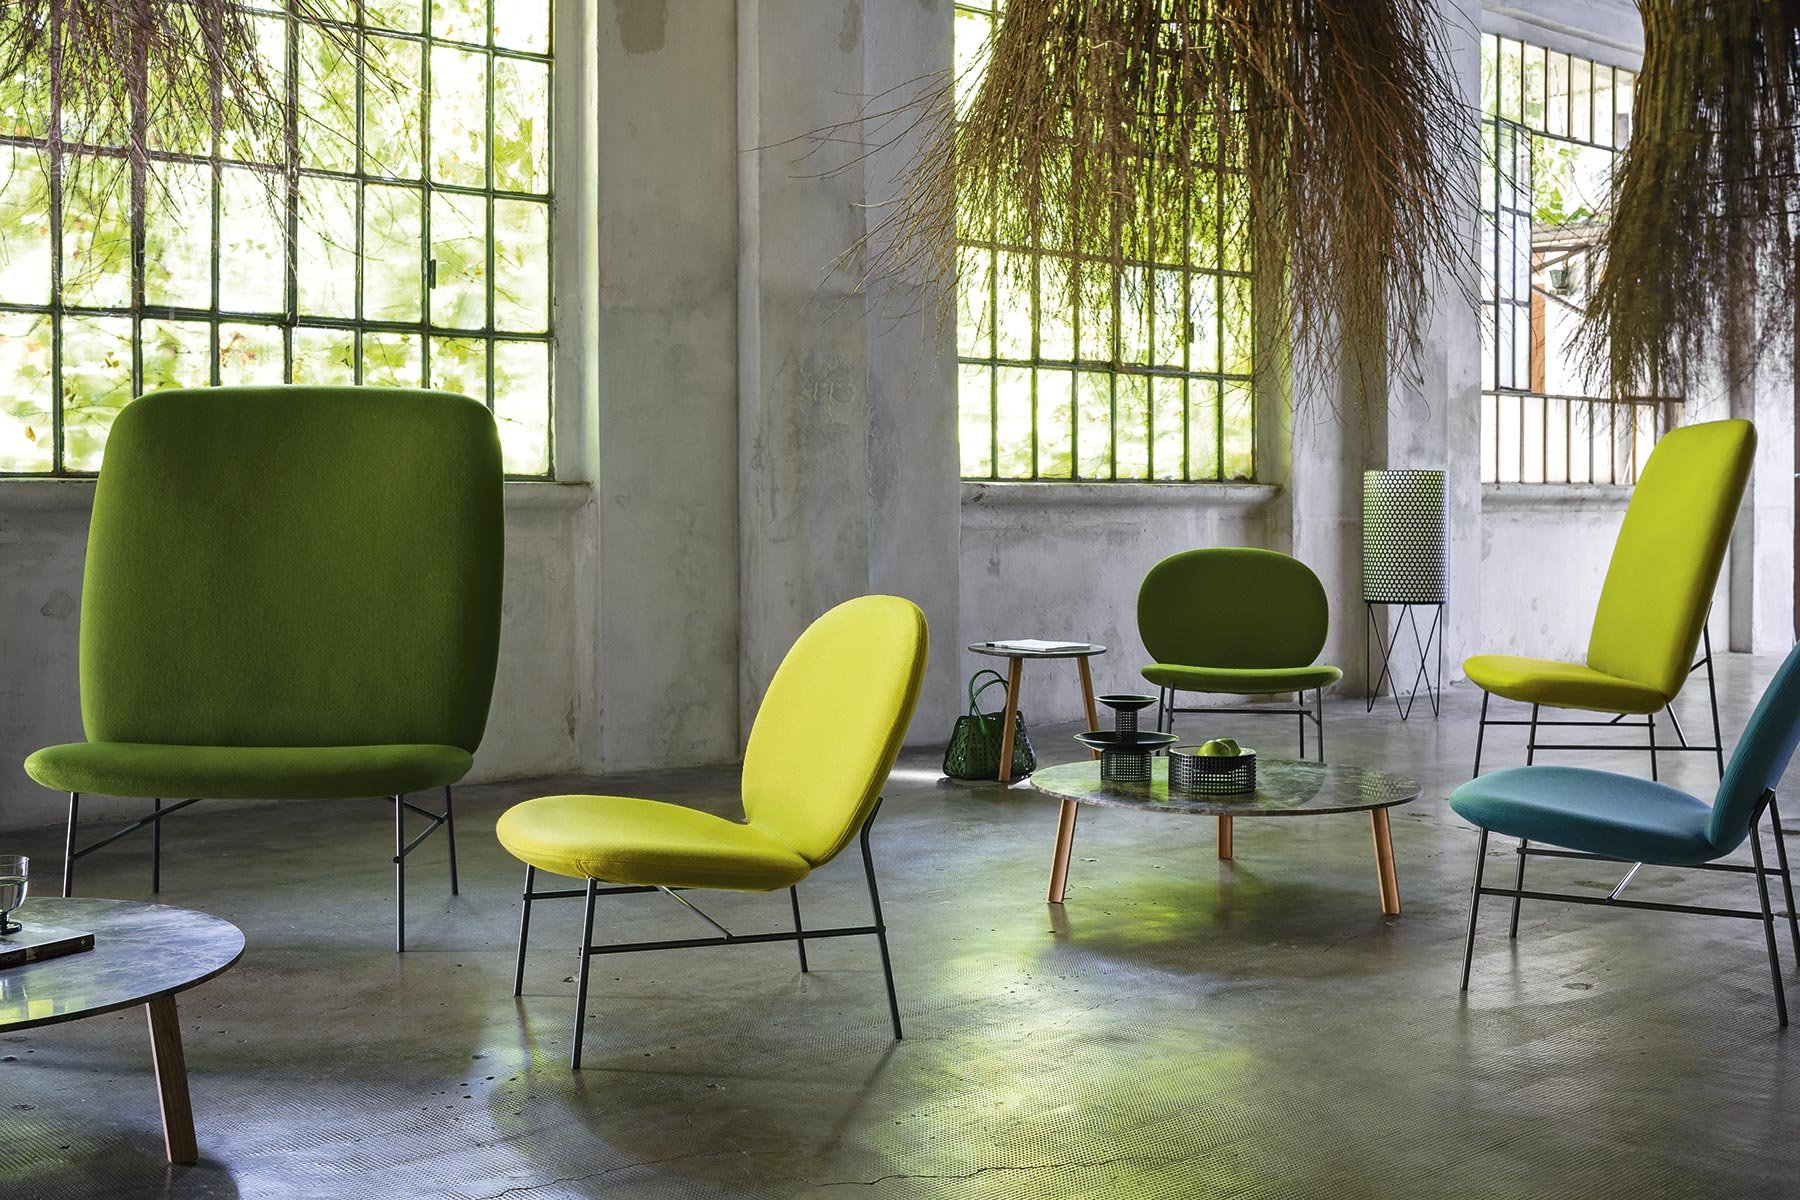 Kelly E Chair from Tacchini, designed by Claesson Koivisto Rune